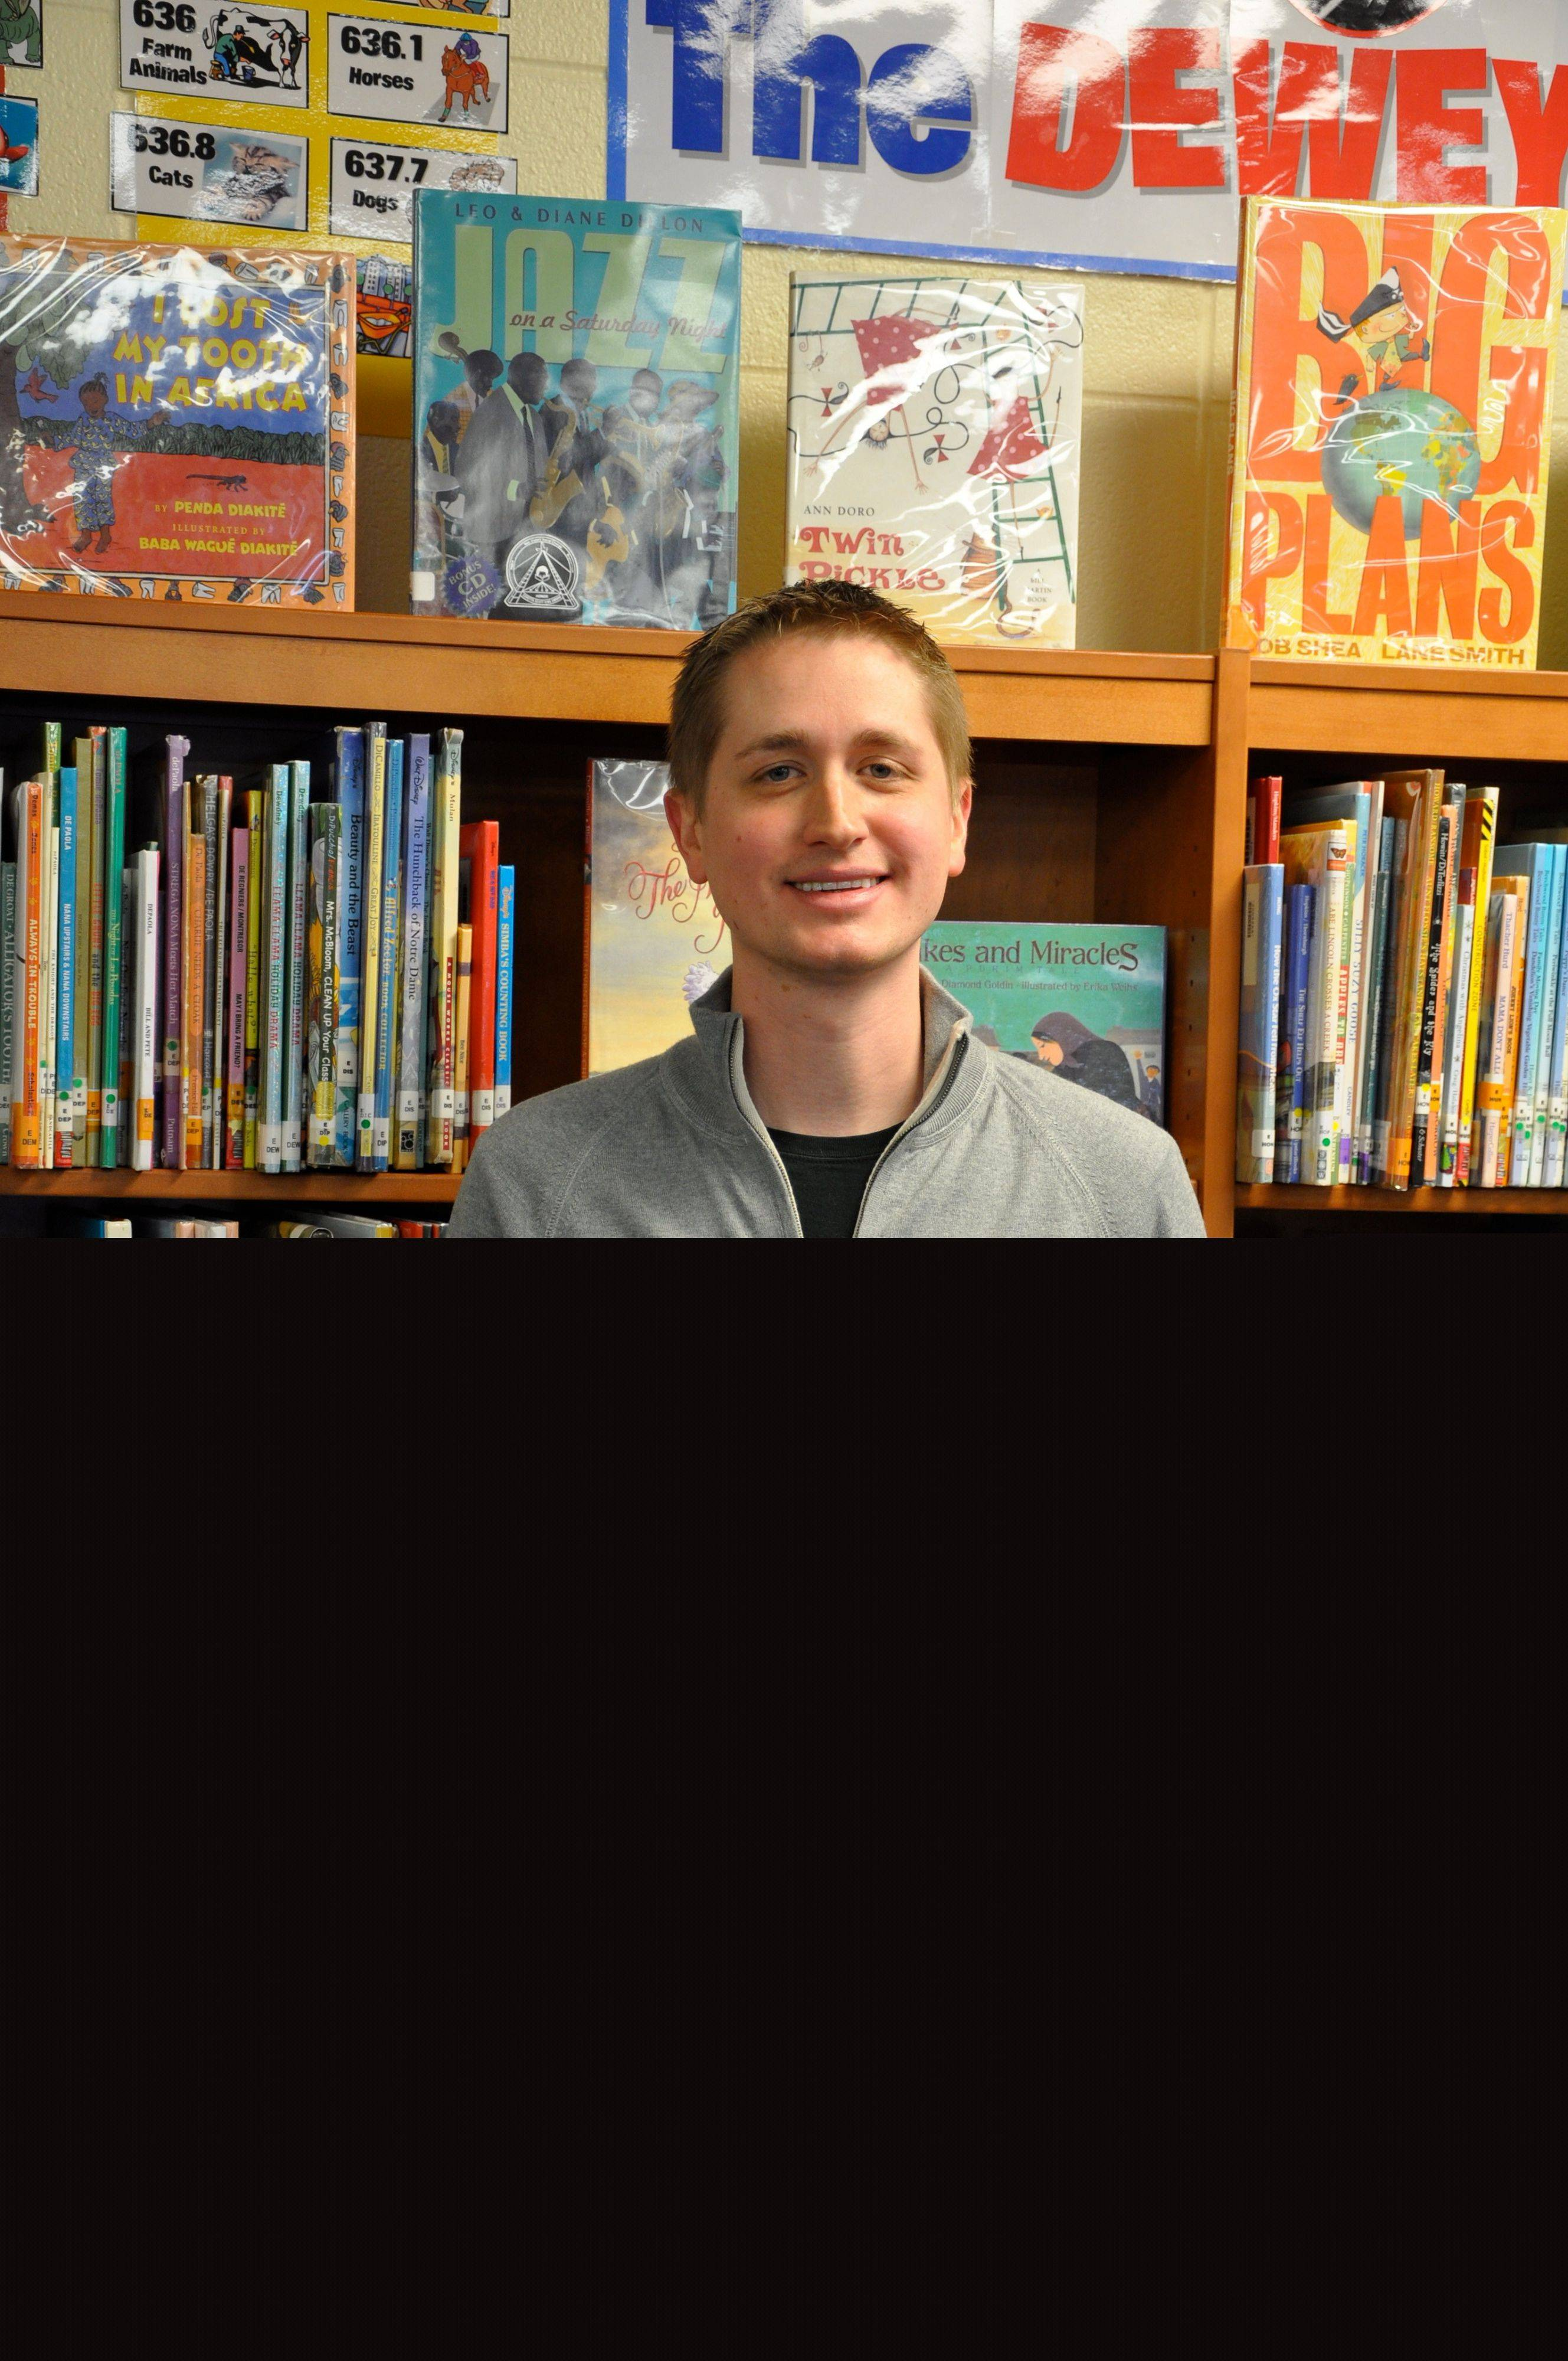 John Schumacher, library director at Brook Forest Elementary School in Oak Brook, is nationally recognized for his innovative approach to getting kids to read.